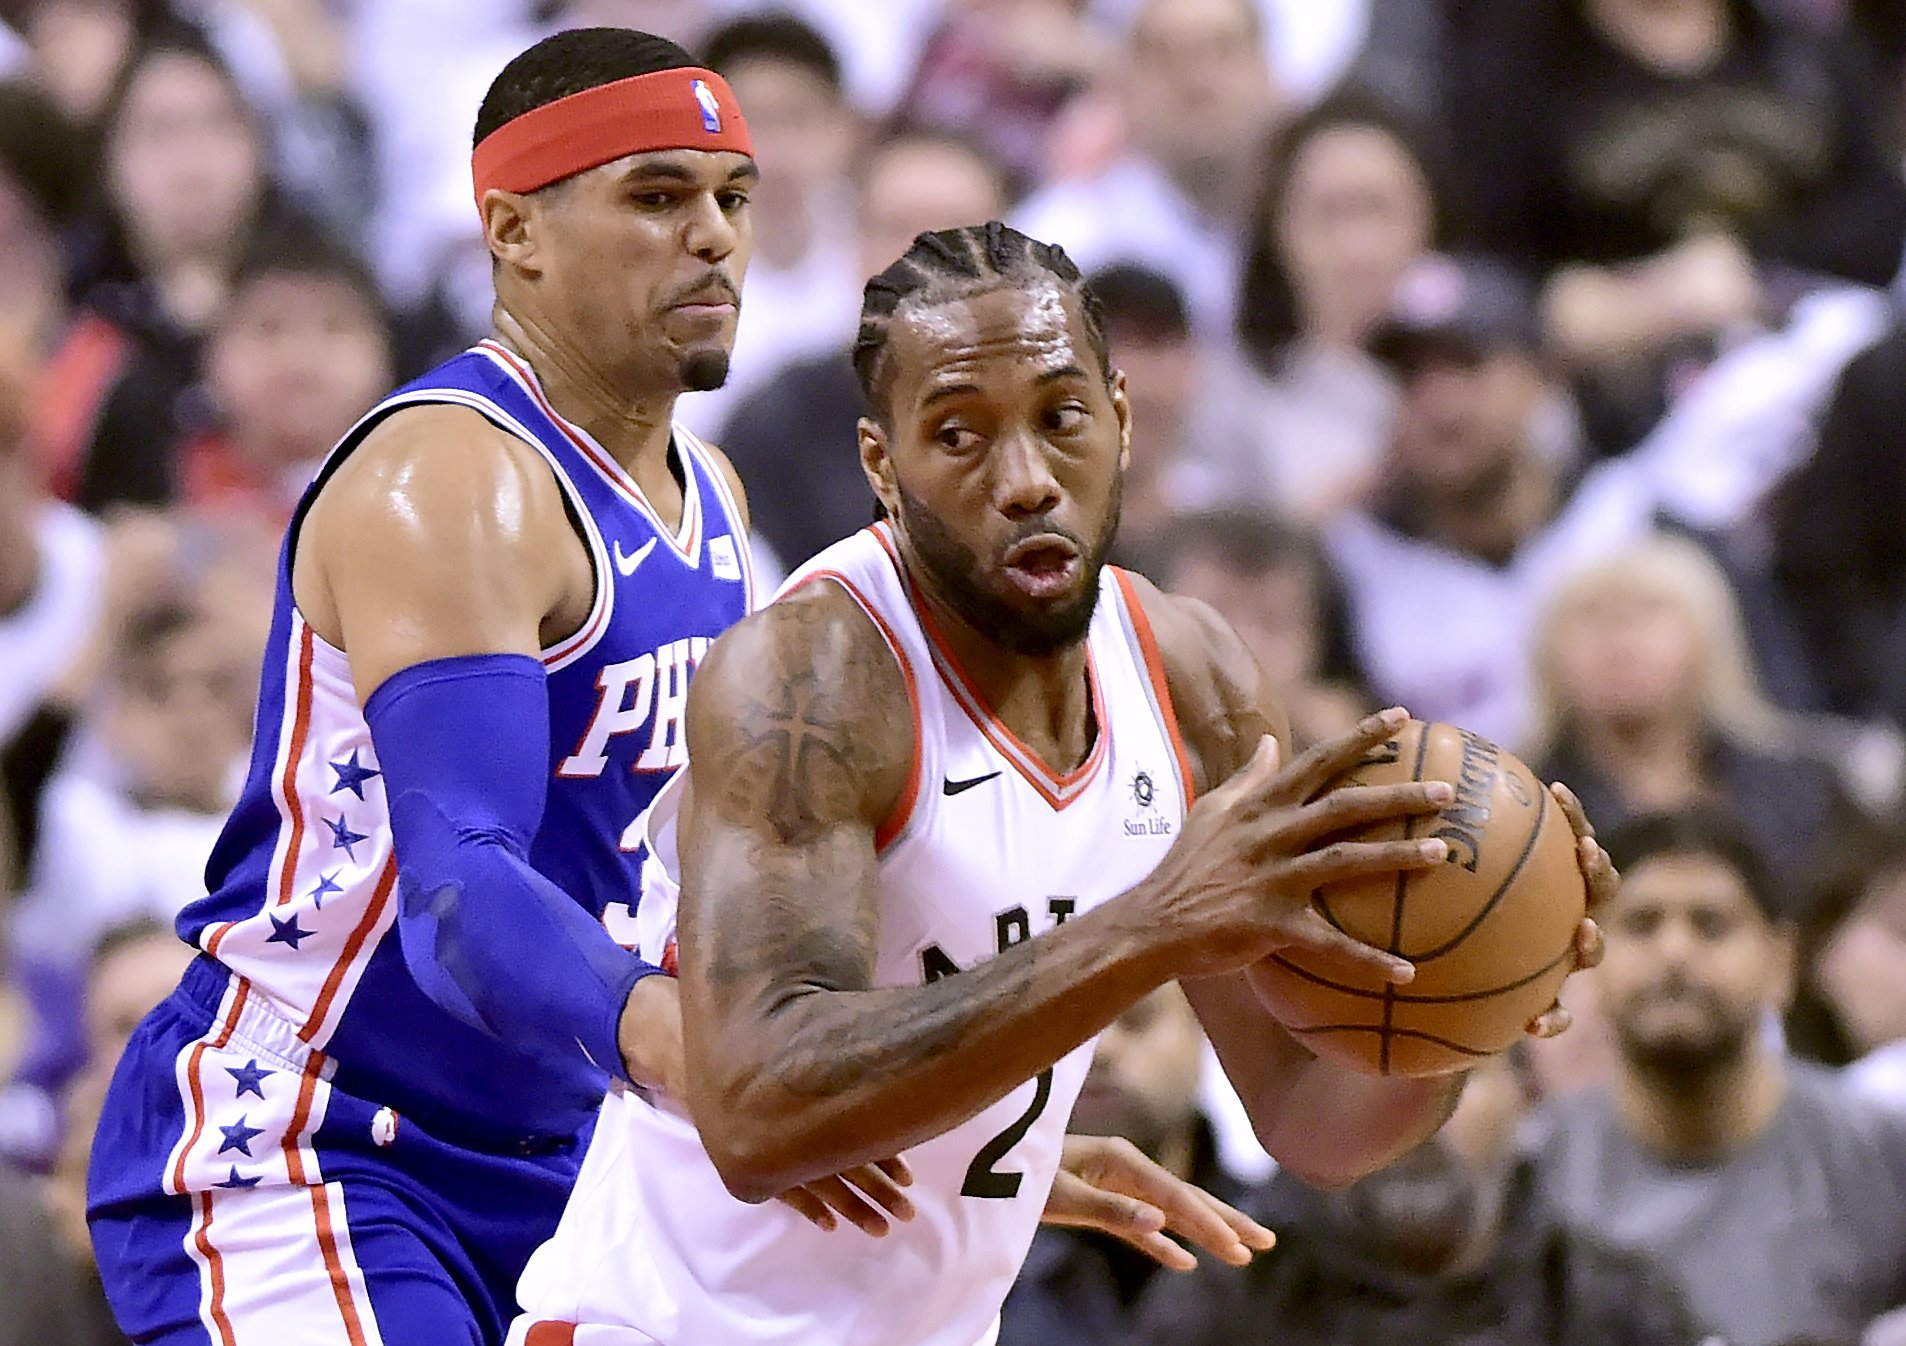 Leonard scores 45 points, Raptors top 76ers 108-95 in Game 1